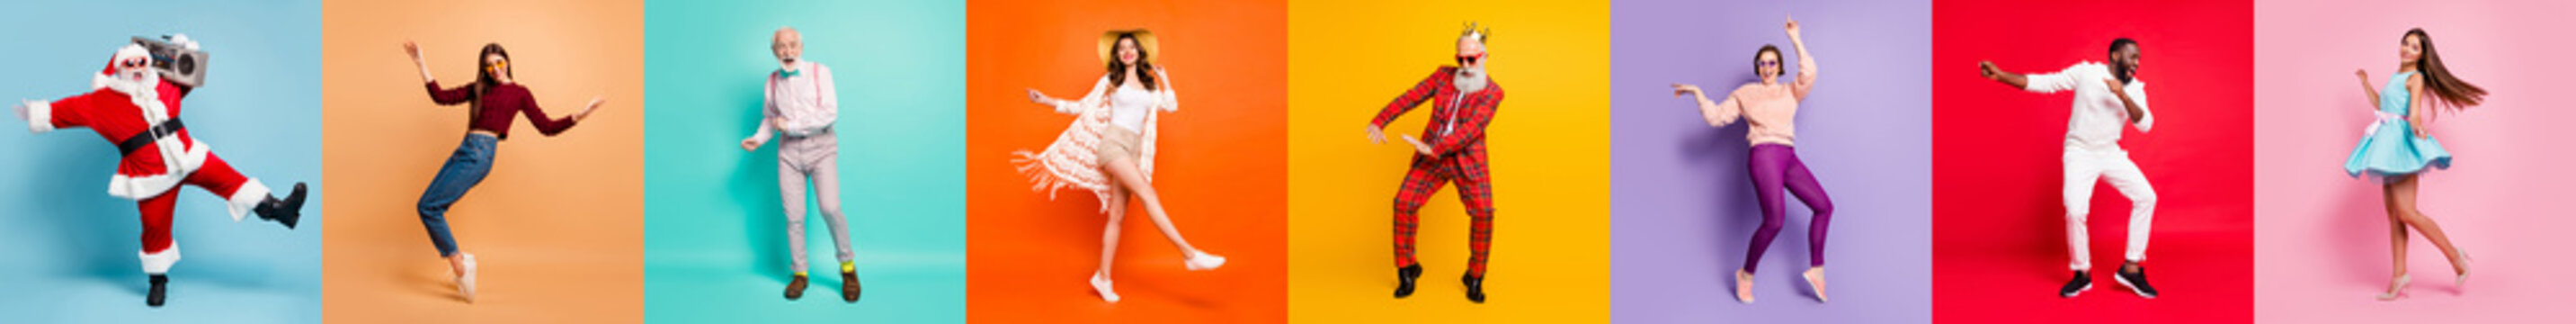 Multiple montage full body collage eight excited people different age race ladies guys good mood friendship free time rejoicing fall winter spring summer vibes disco isolated colorful background